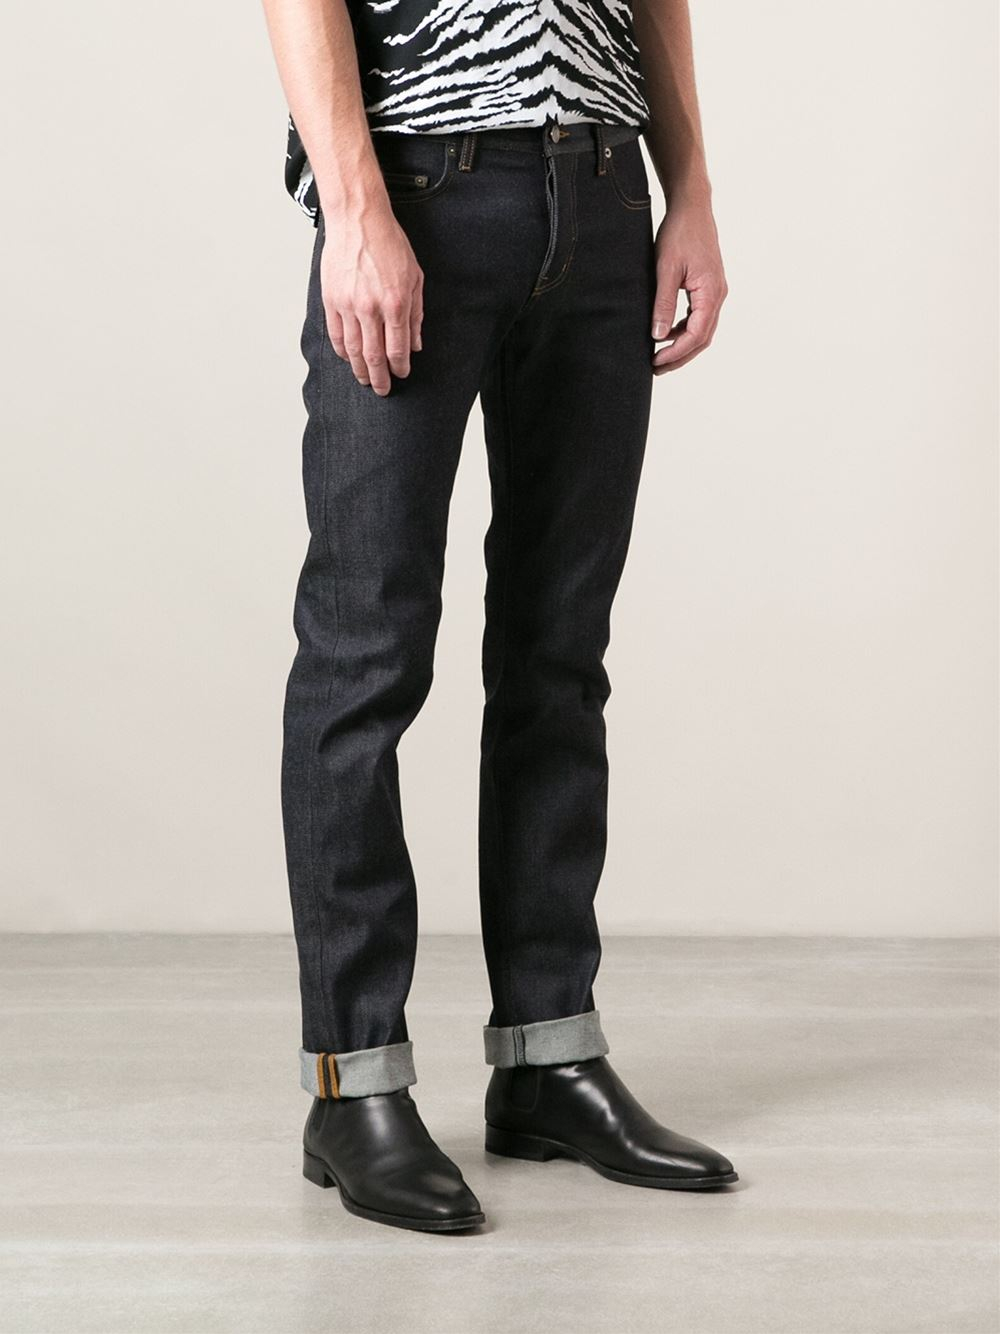 lyst saint laurent straight leg jeans in blue for men. Black Bedroom Furniture Sets. Home Design Ideas